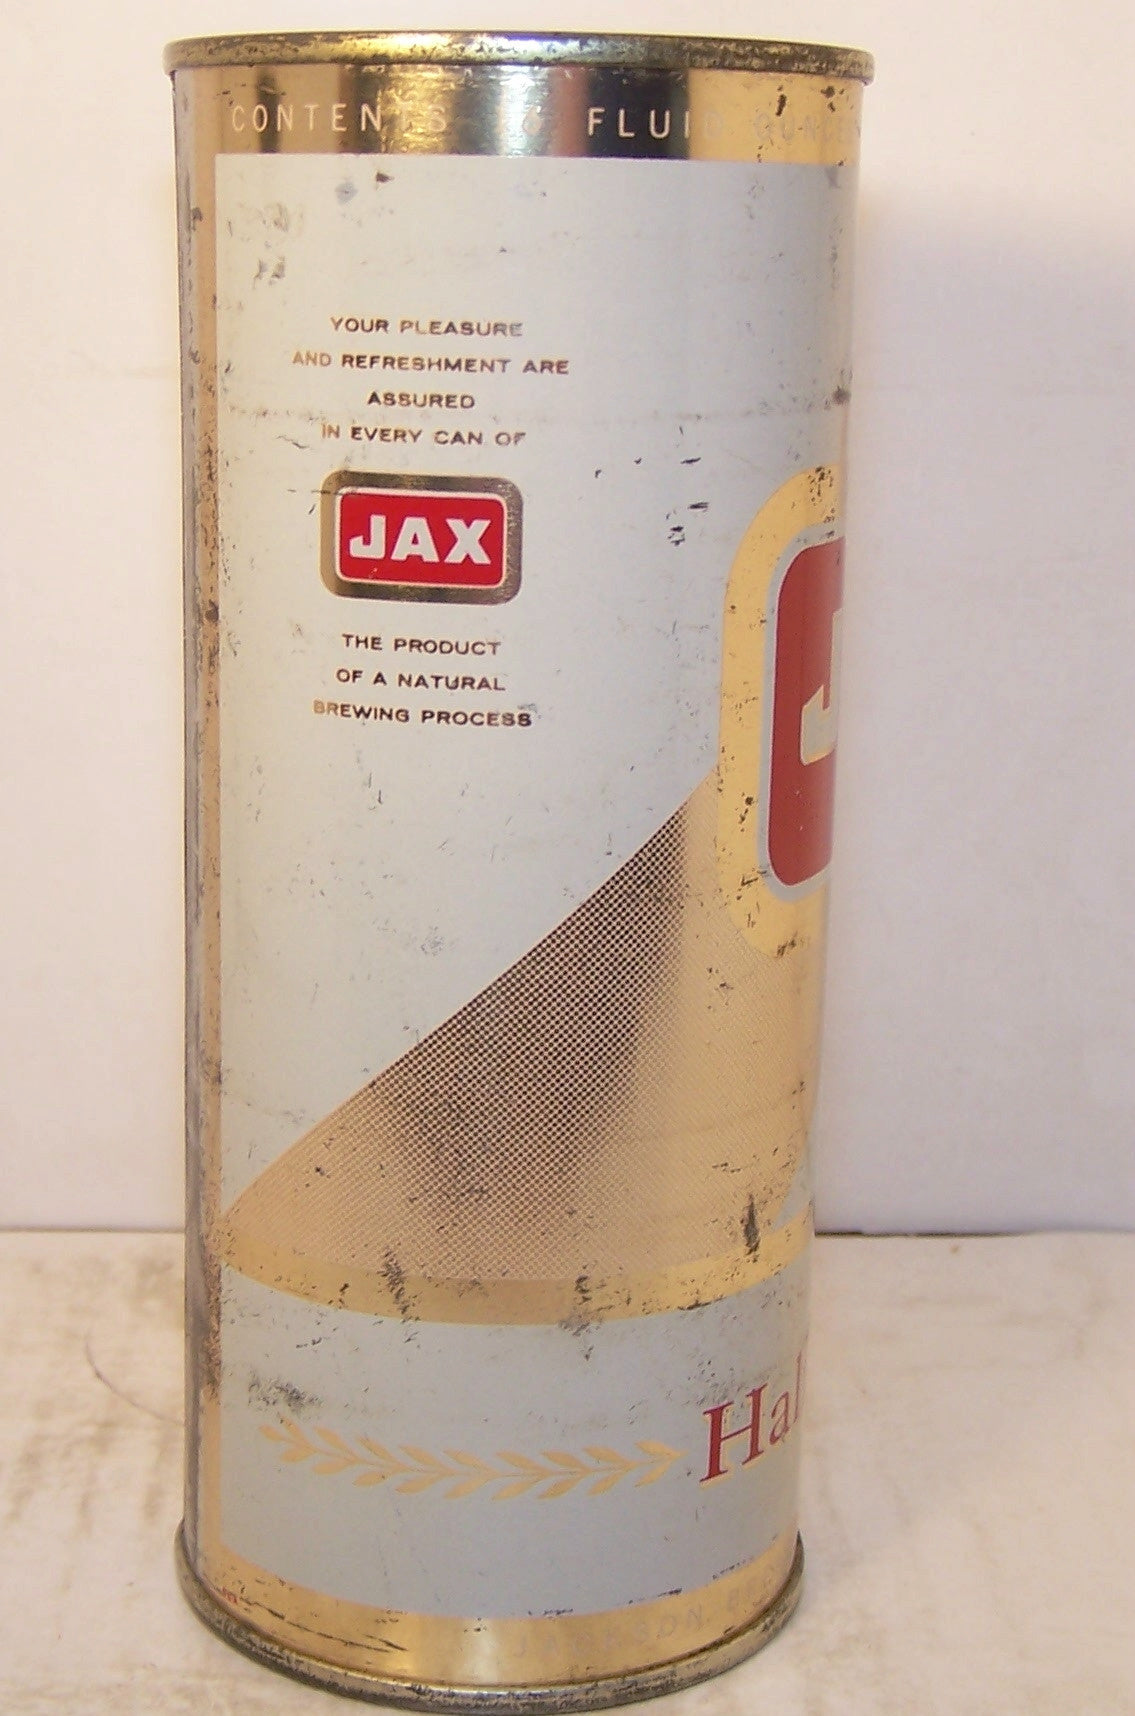 Jax Beer, USBC 231-8, Grade 1- Sold on 12/01/16